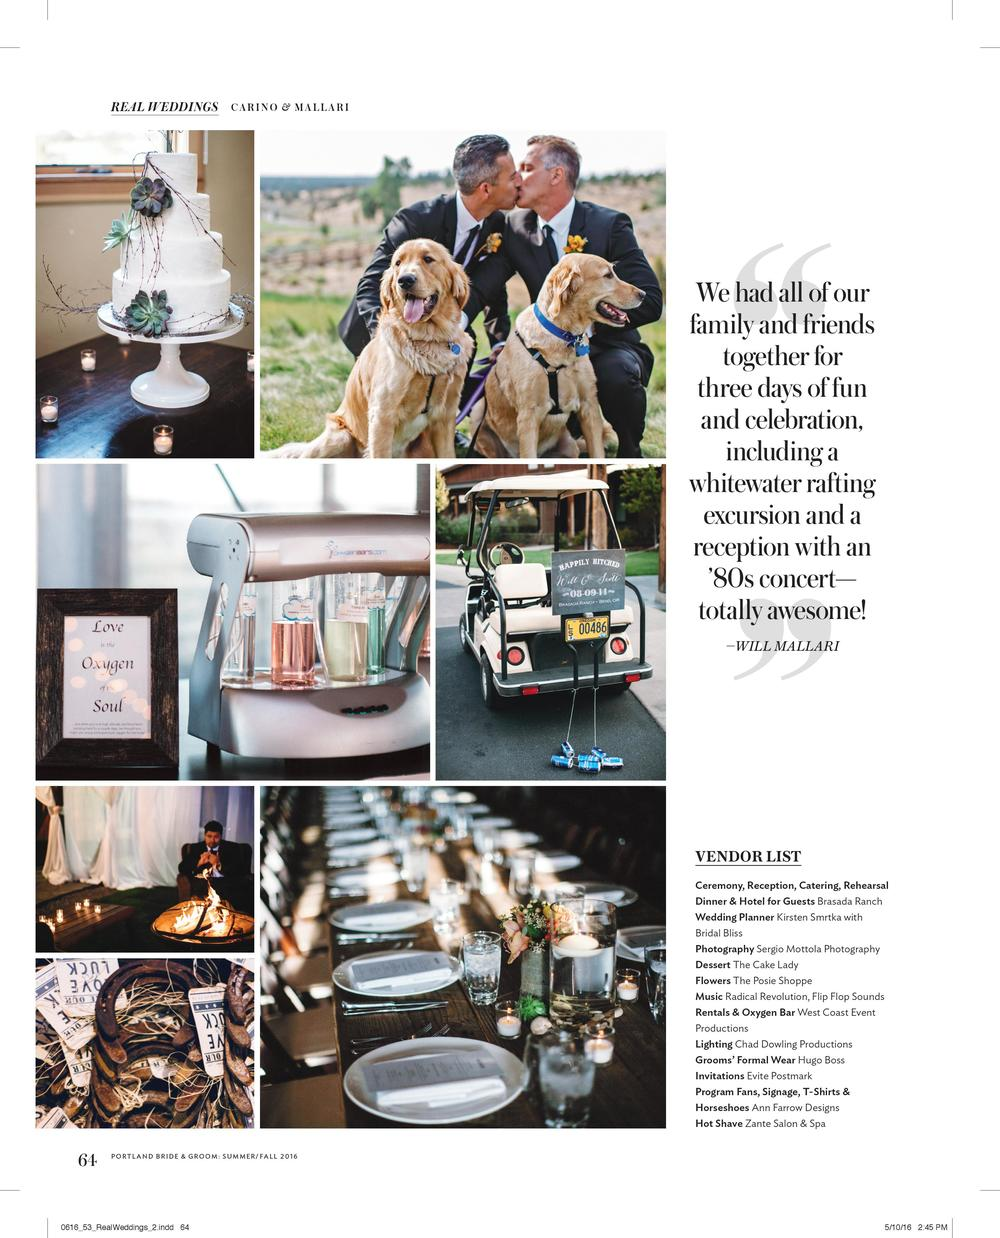 Bridalbliss.com | Bend Wedding Planner | Central Oregon Oregon Event Design | Sergio Mottola Photography